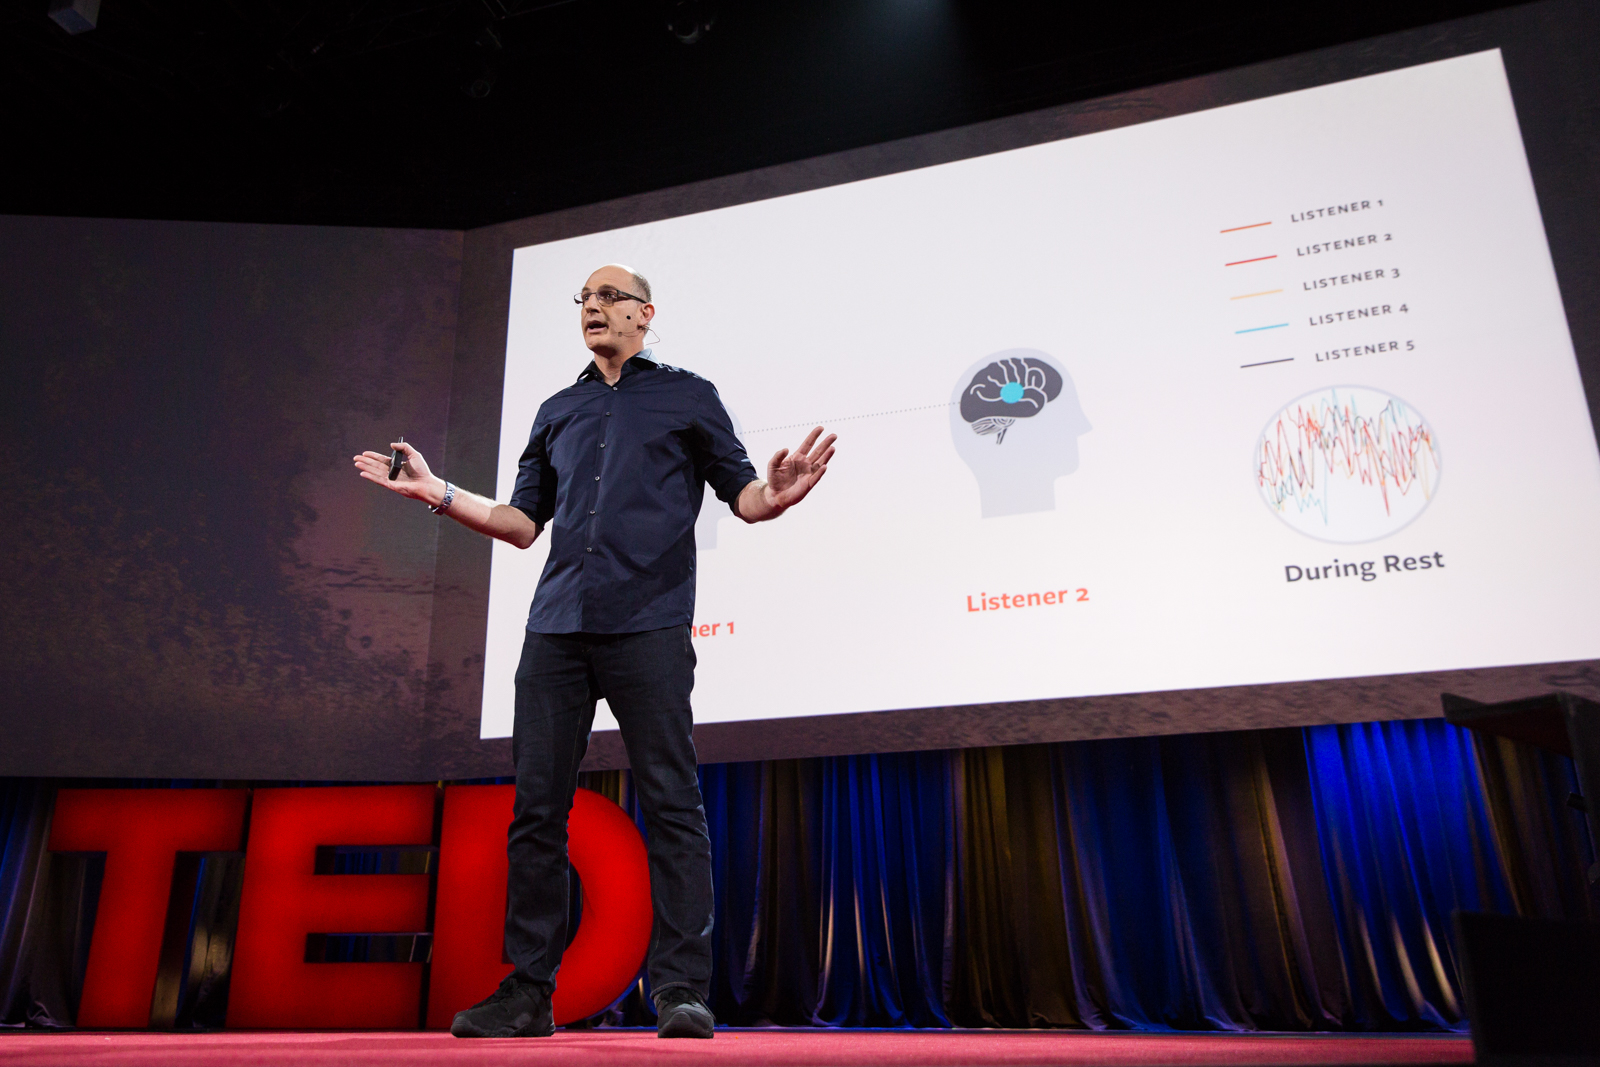 Uri Hasson speaks at TED2016 - Dream, February 15-19, 2016, Vancouver Convention Center, Vancouver, Canada. Photo: Bret Hartman / TED